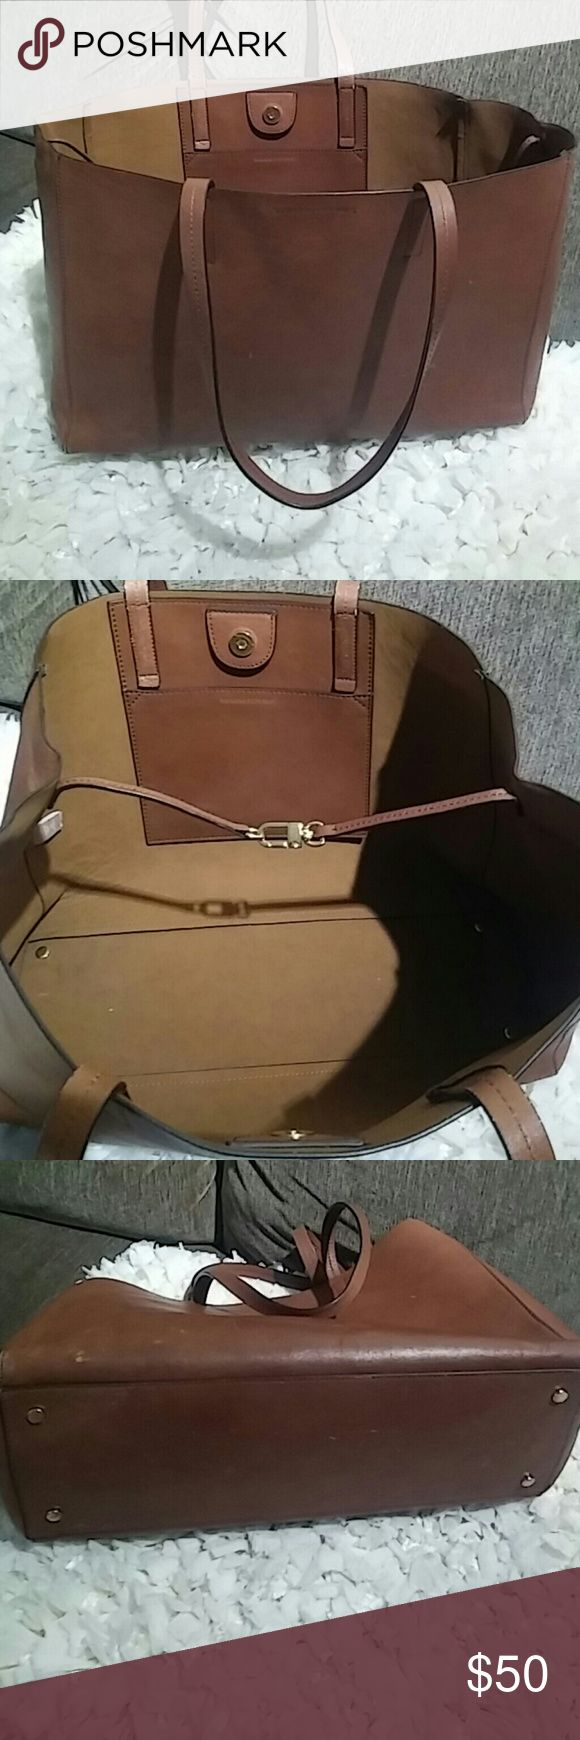 Banana Republic Leather Tote Bag In Pre-Owned Condition has some scratches needs a good leather cleaner. Banana Republic Bags Totes